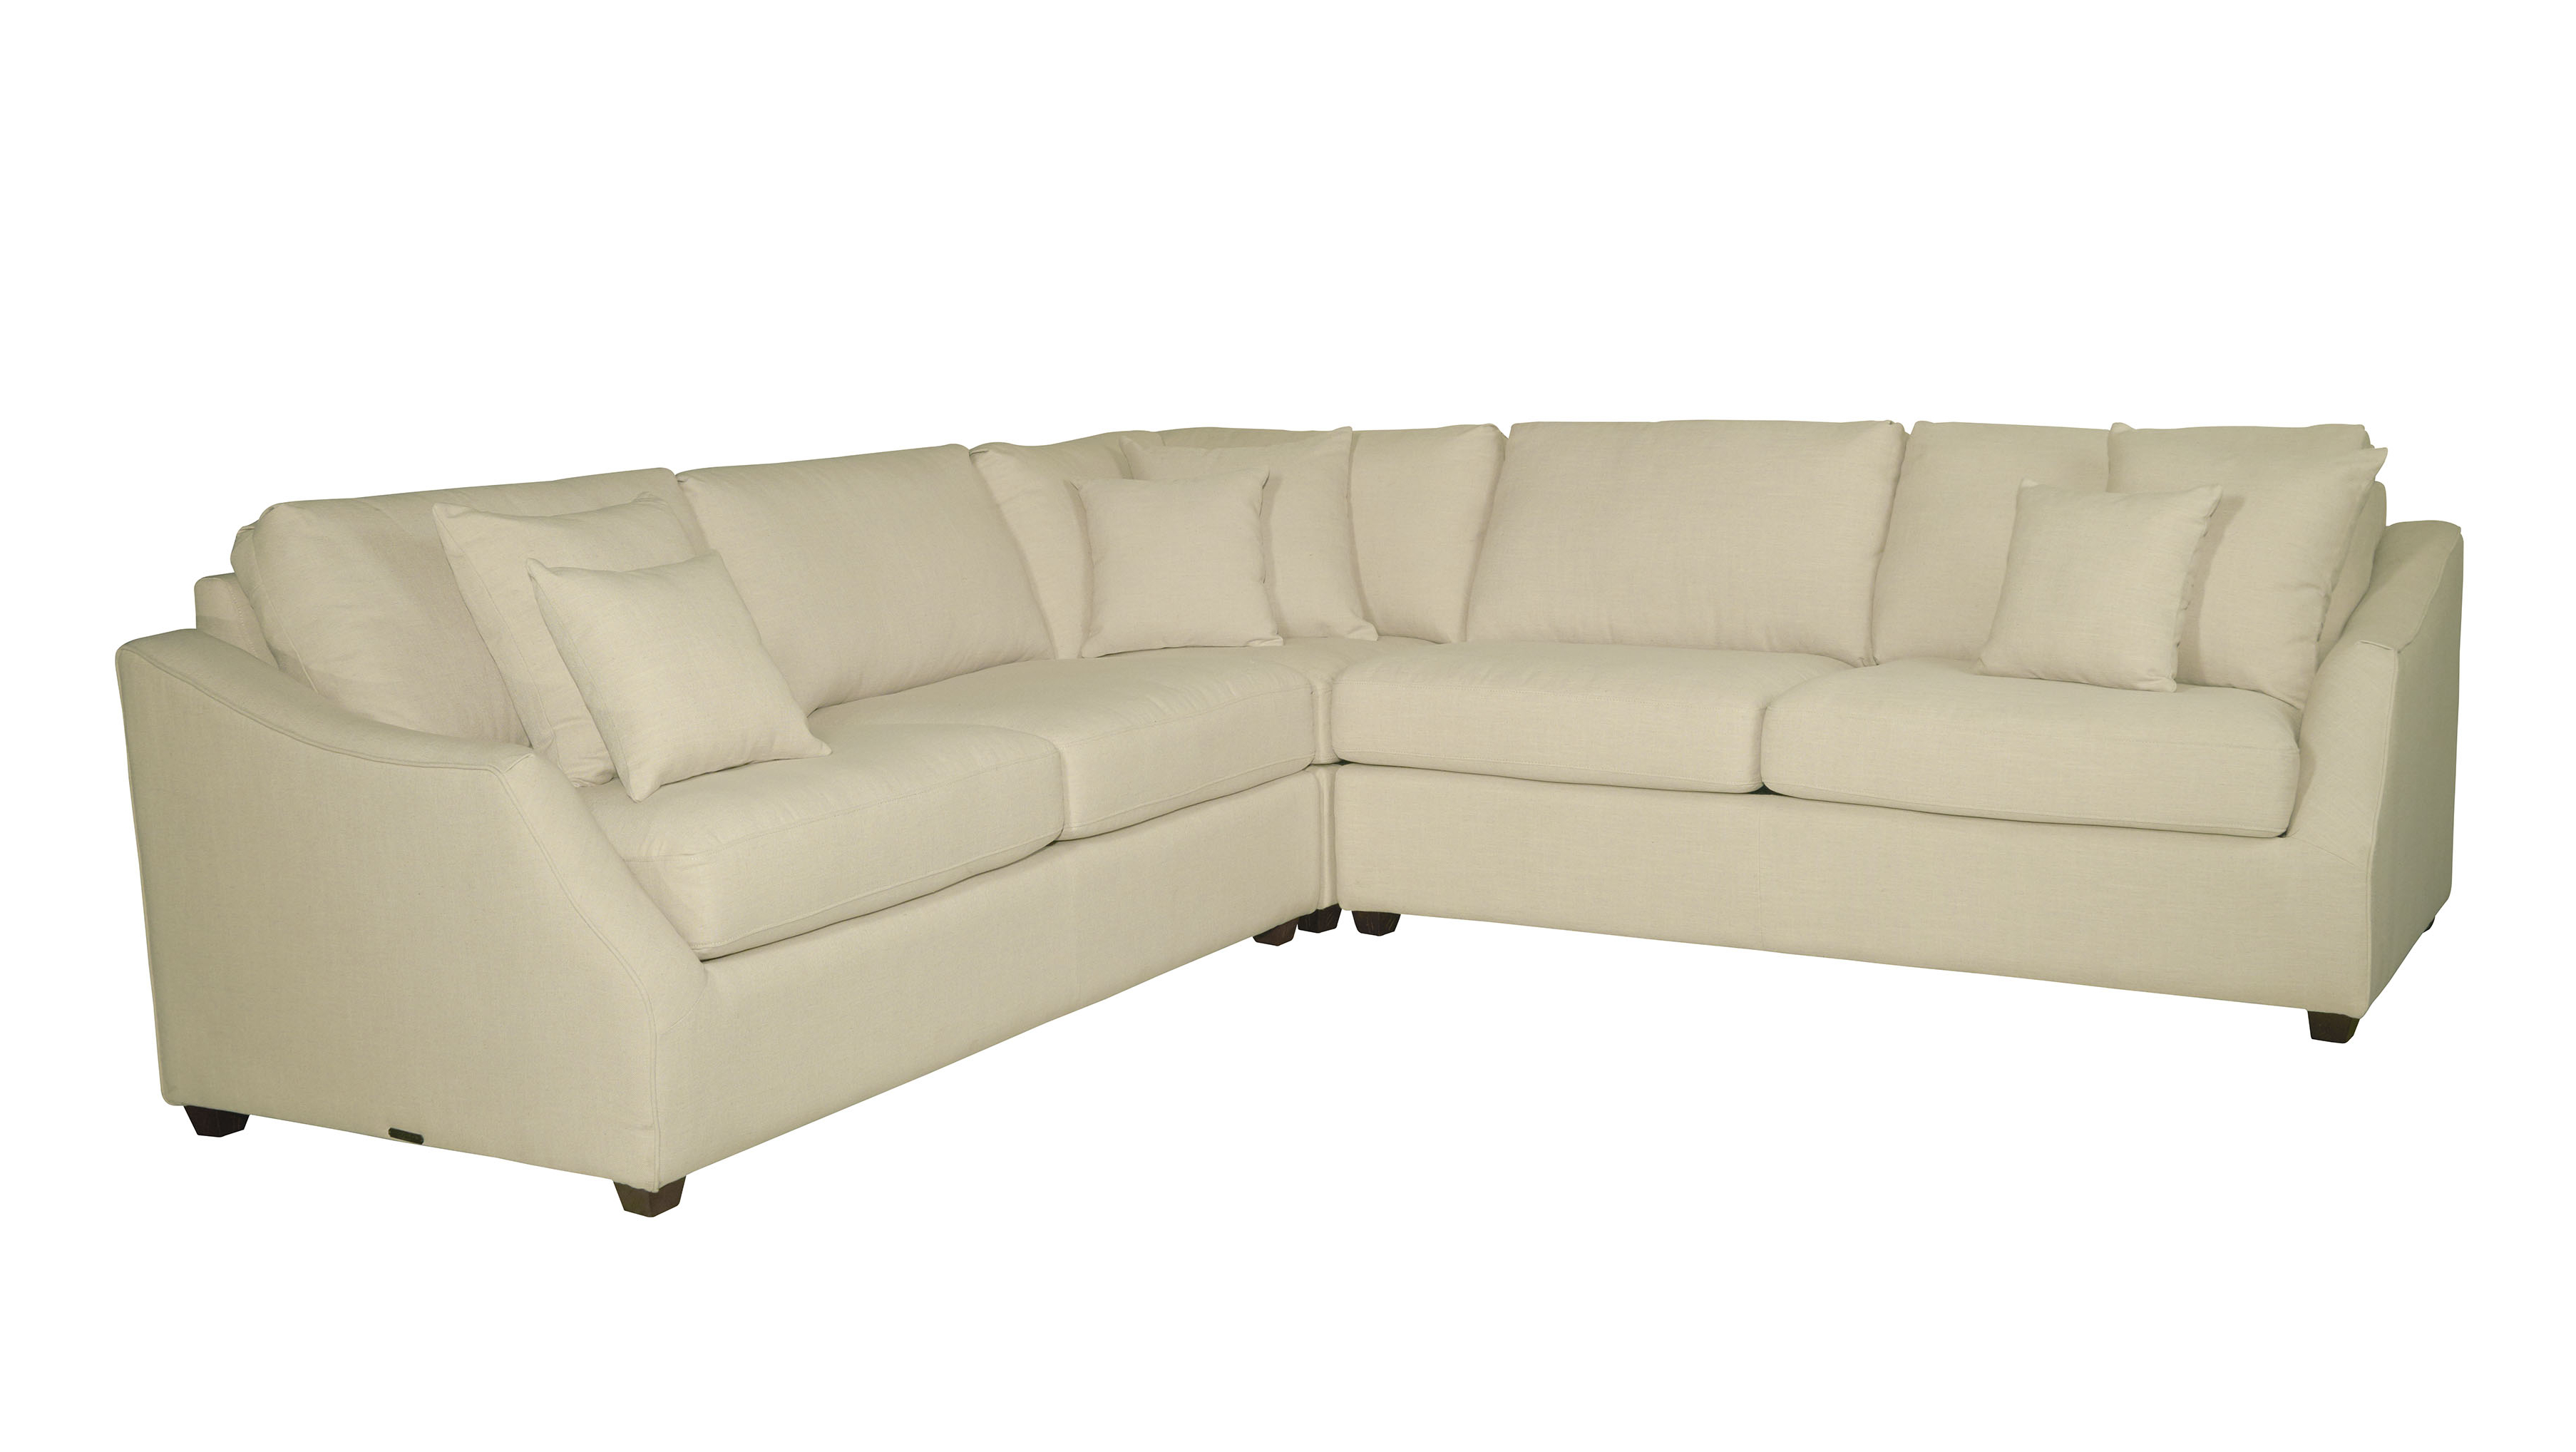 Magnolia Home Homestead 4 Piece Sectionals By Joanna Gaines Inside Best And Newest Homestead Sectional – Magnolia Home (View 10 of 20)